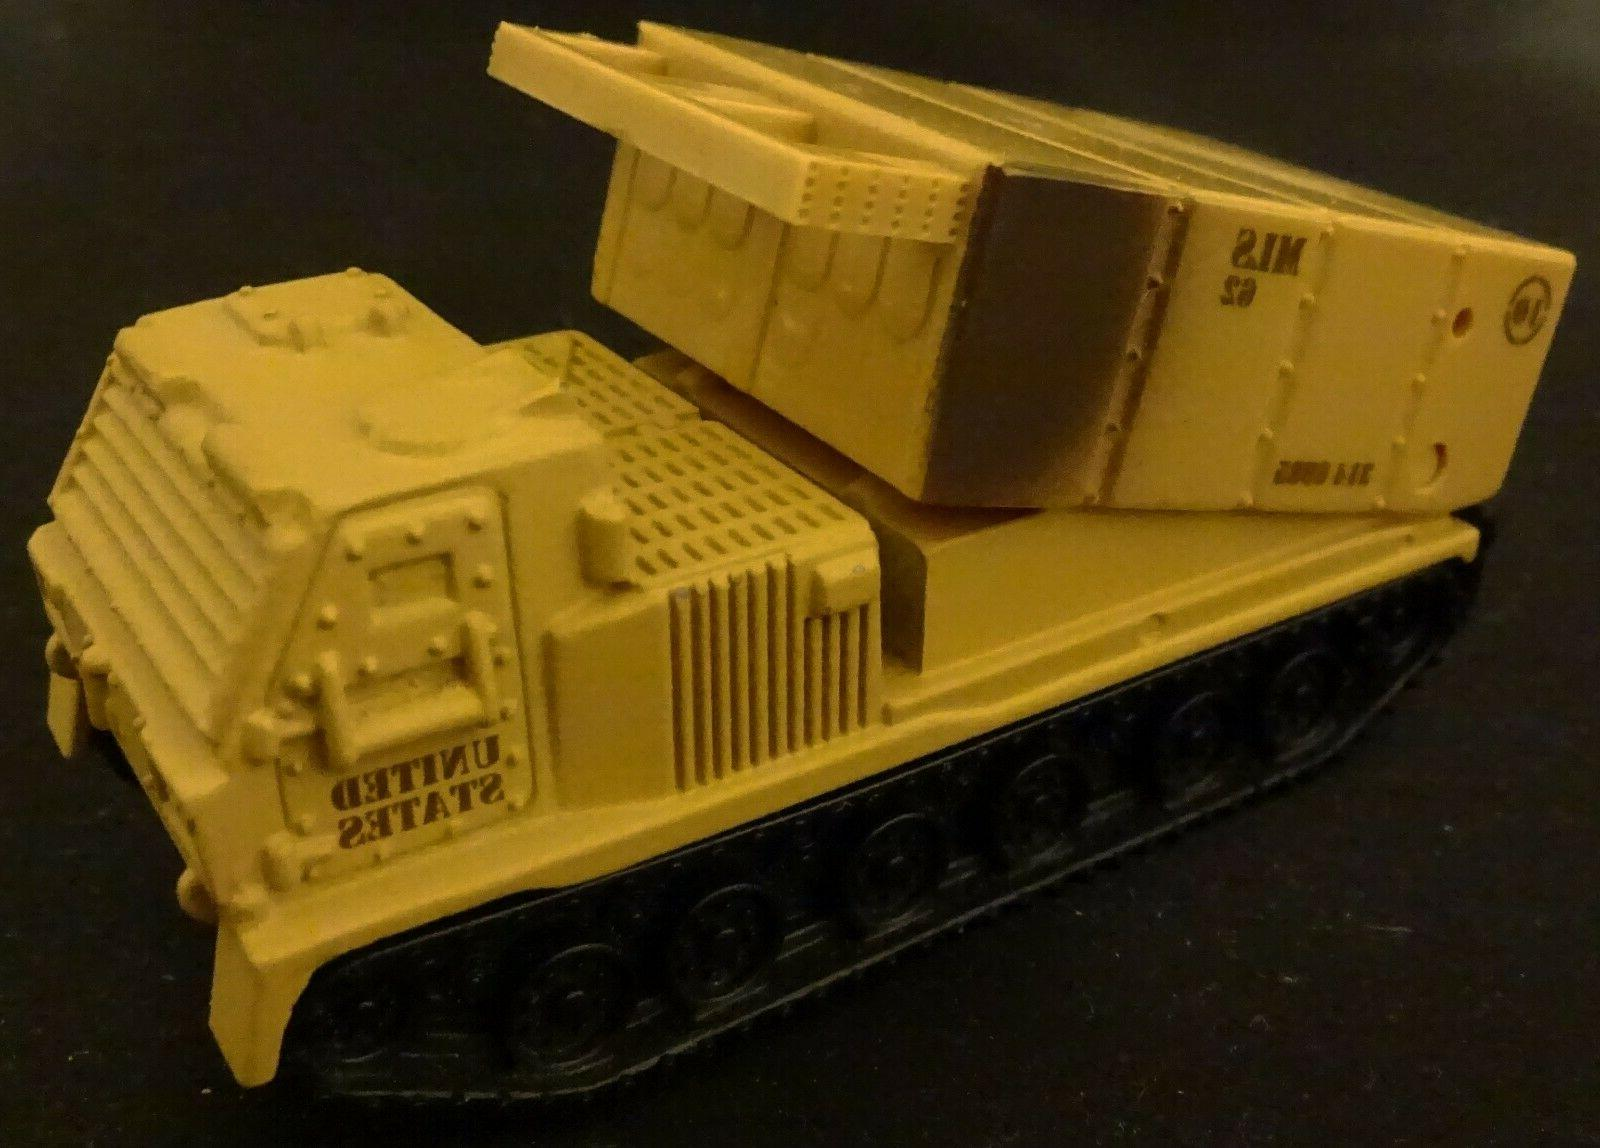 1998 mls missile launcher 52 in sealed